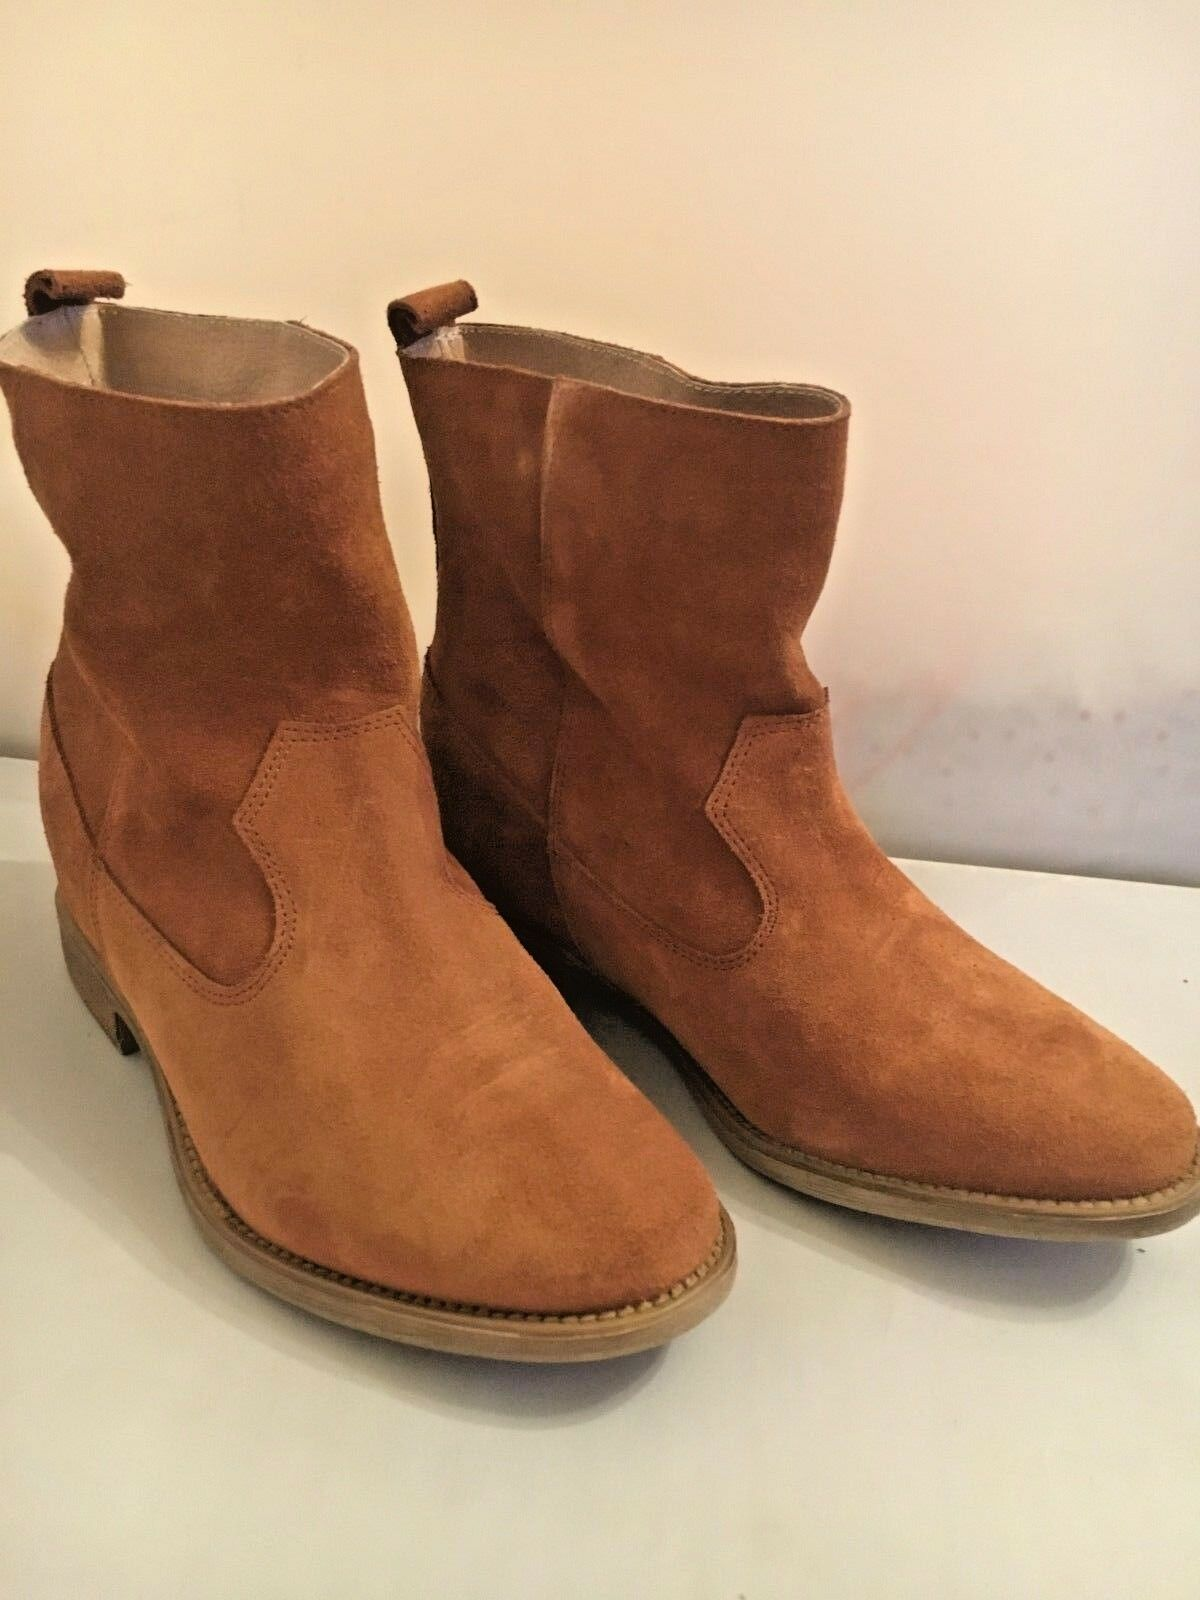 Anthropologie marron Suede Pull On Ankle bottes démarrageies Spain Taille 36 New